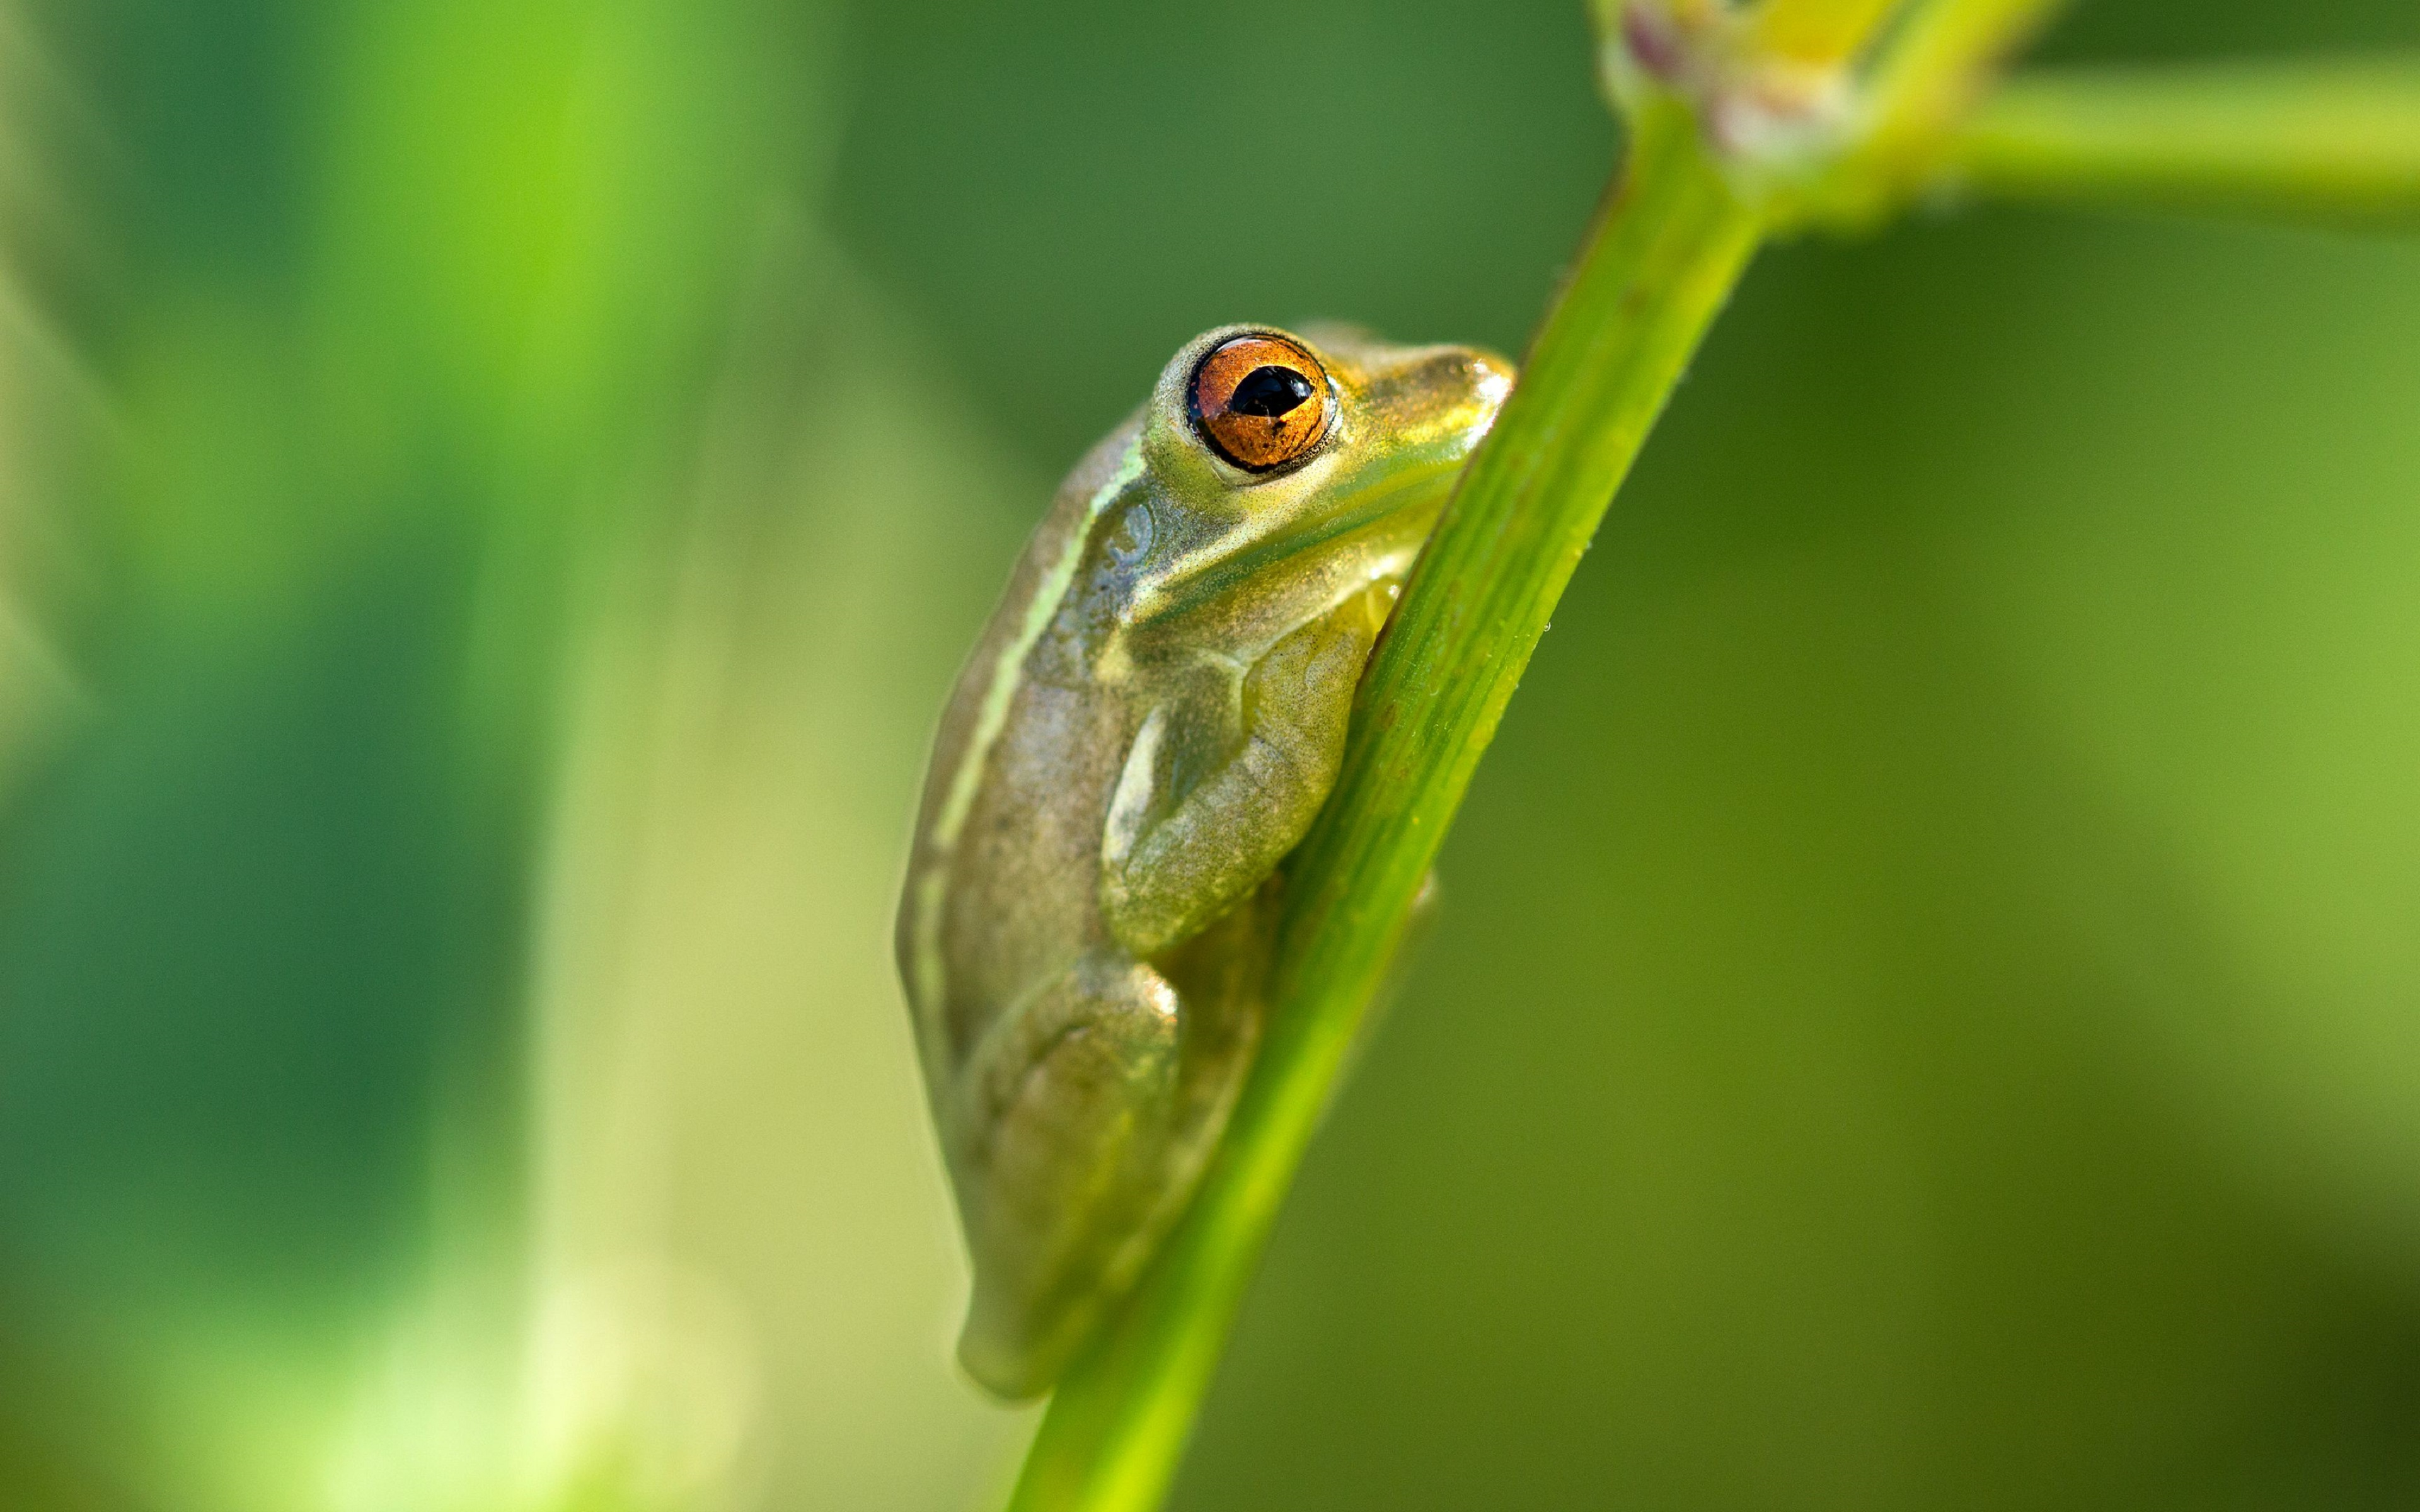 frog close up 4k wallpaper